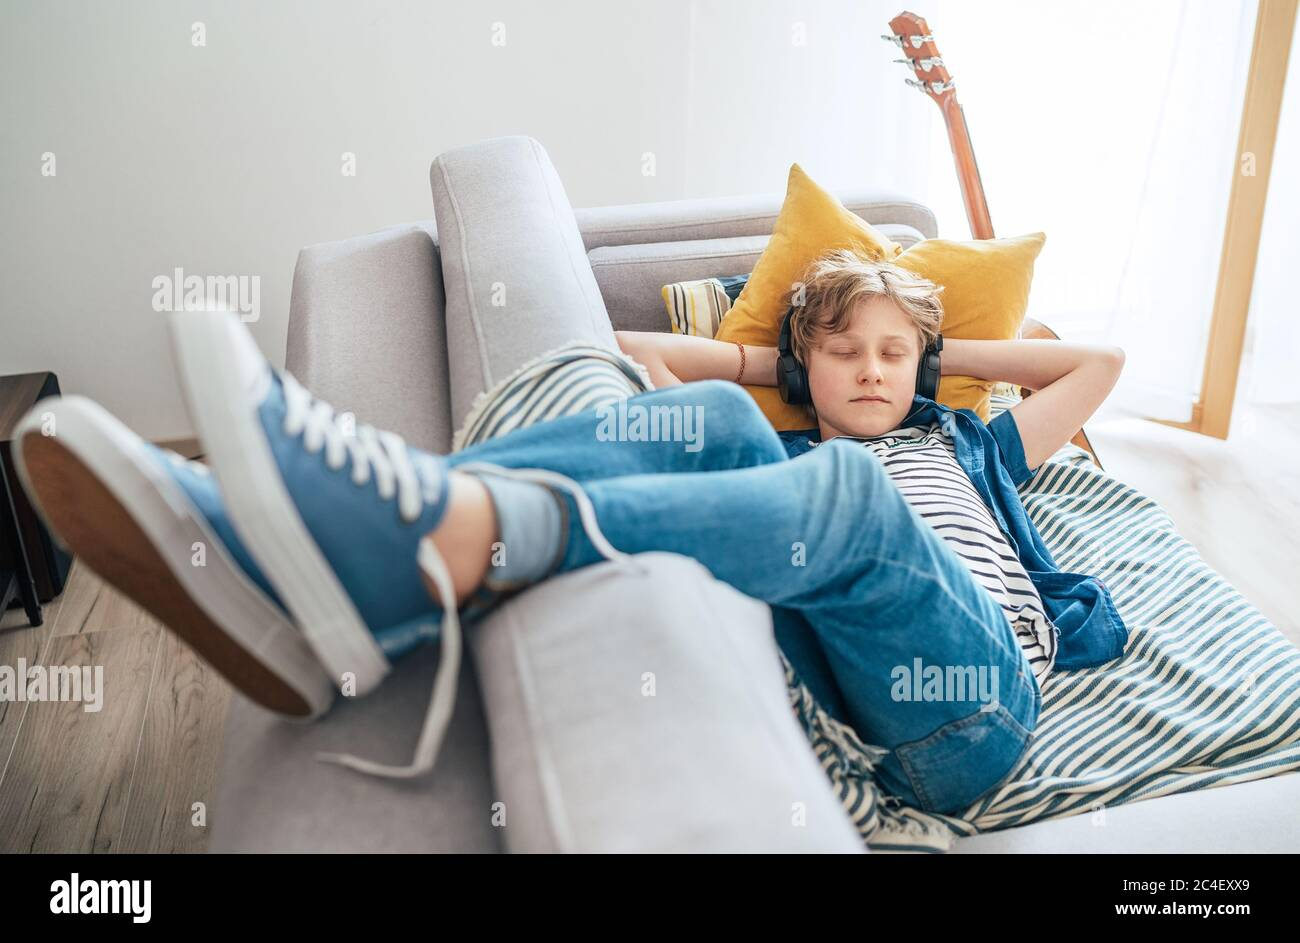 Sleeping preteen boy lying at the home living room filled with sunlight on the cozy sofa dressed casual jeans and sneakers listening to music Stock Photo